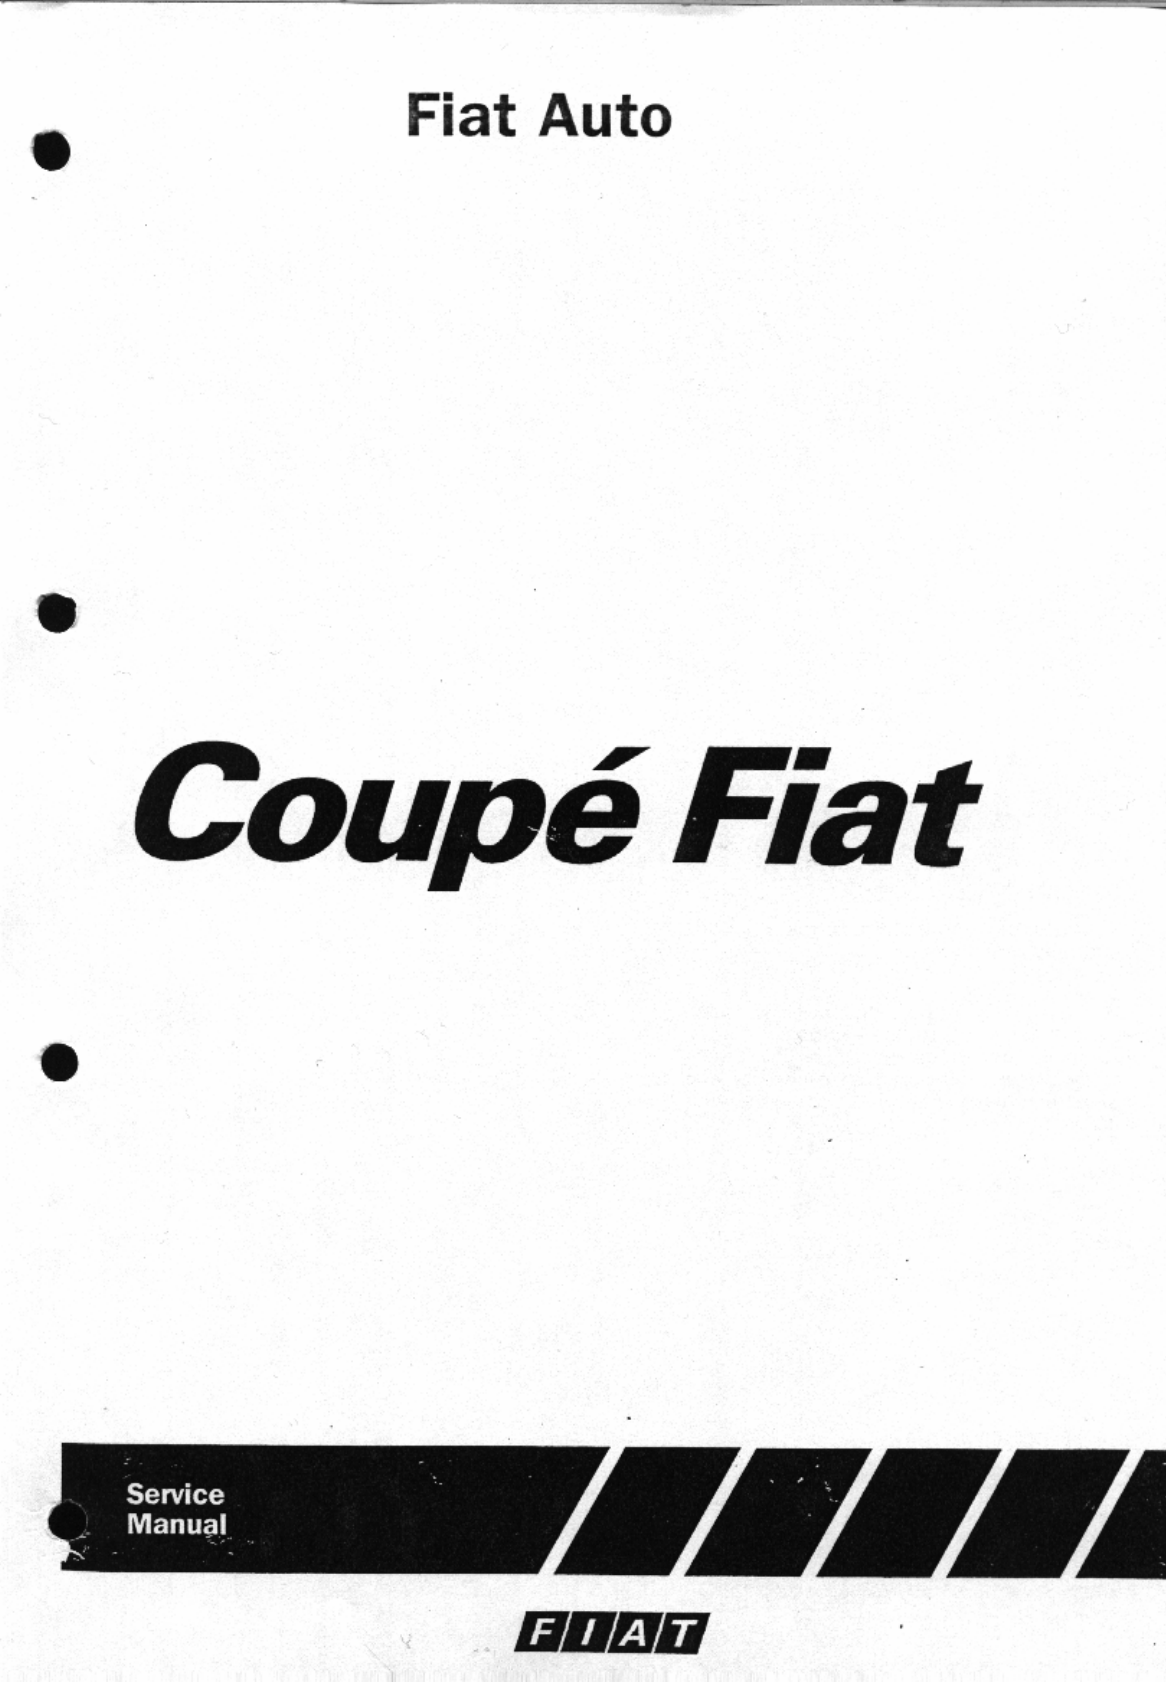 See our other Fiat Coupe Manuals: